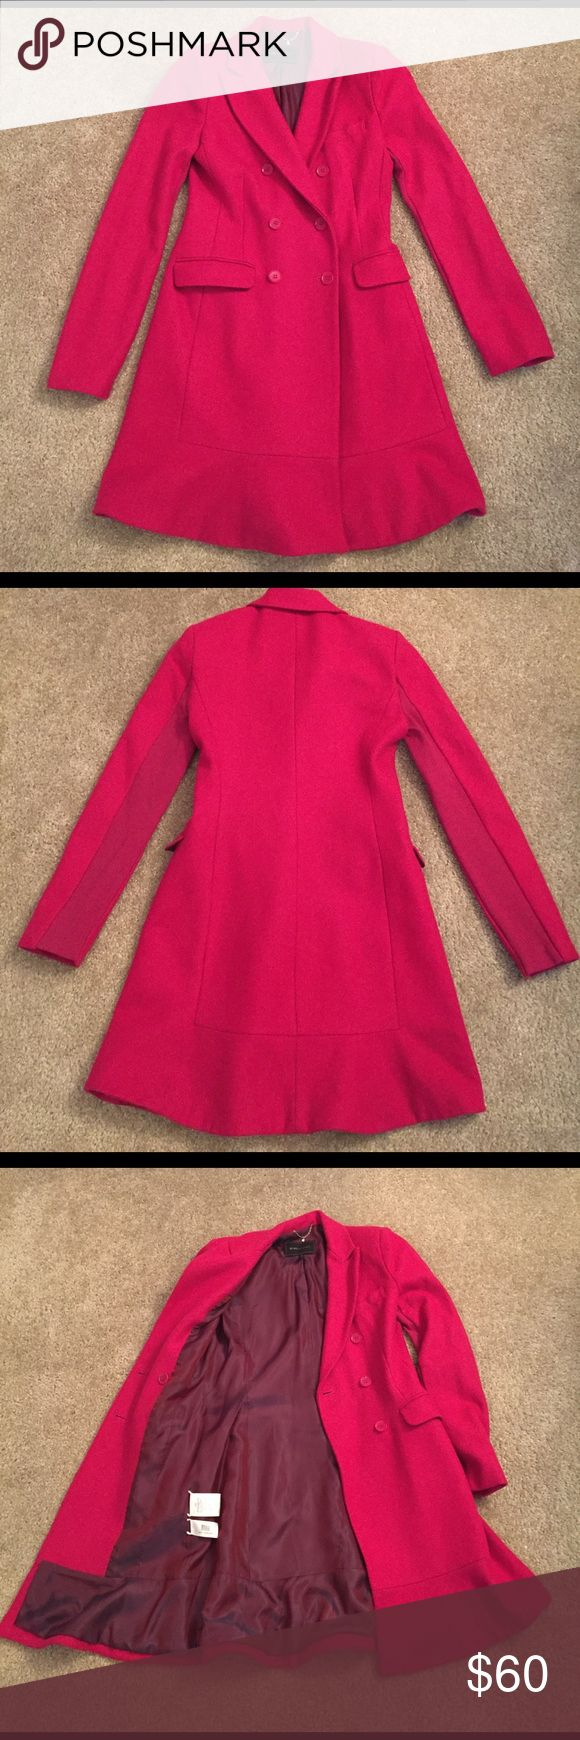 BCBGMaxAzria Pink Fuchsia Wool Pea Coat, XS, Cute! BCBGMAXAZRIA Pink Pea Coat for sale! Size XS. Great condition. 60% wool, 35% viscose, 5% cashmere. Lining is 50% polyester and 45% viscose. there are some small marks on the coat, but would easily come off when dry cleaned. (Coat is dry clean only.) it is fully lined and has a gorgeous, vintage flare to the bottom. It is heavy and warm, perfect for the fall or winter. Super adorable and comfortable coat, look fashionable while also staying…